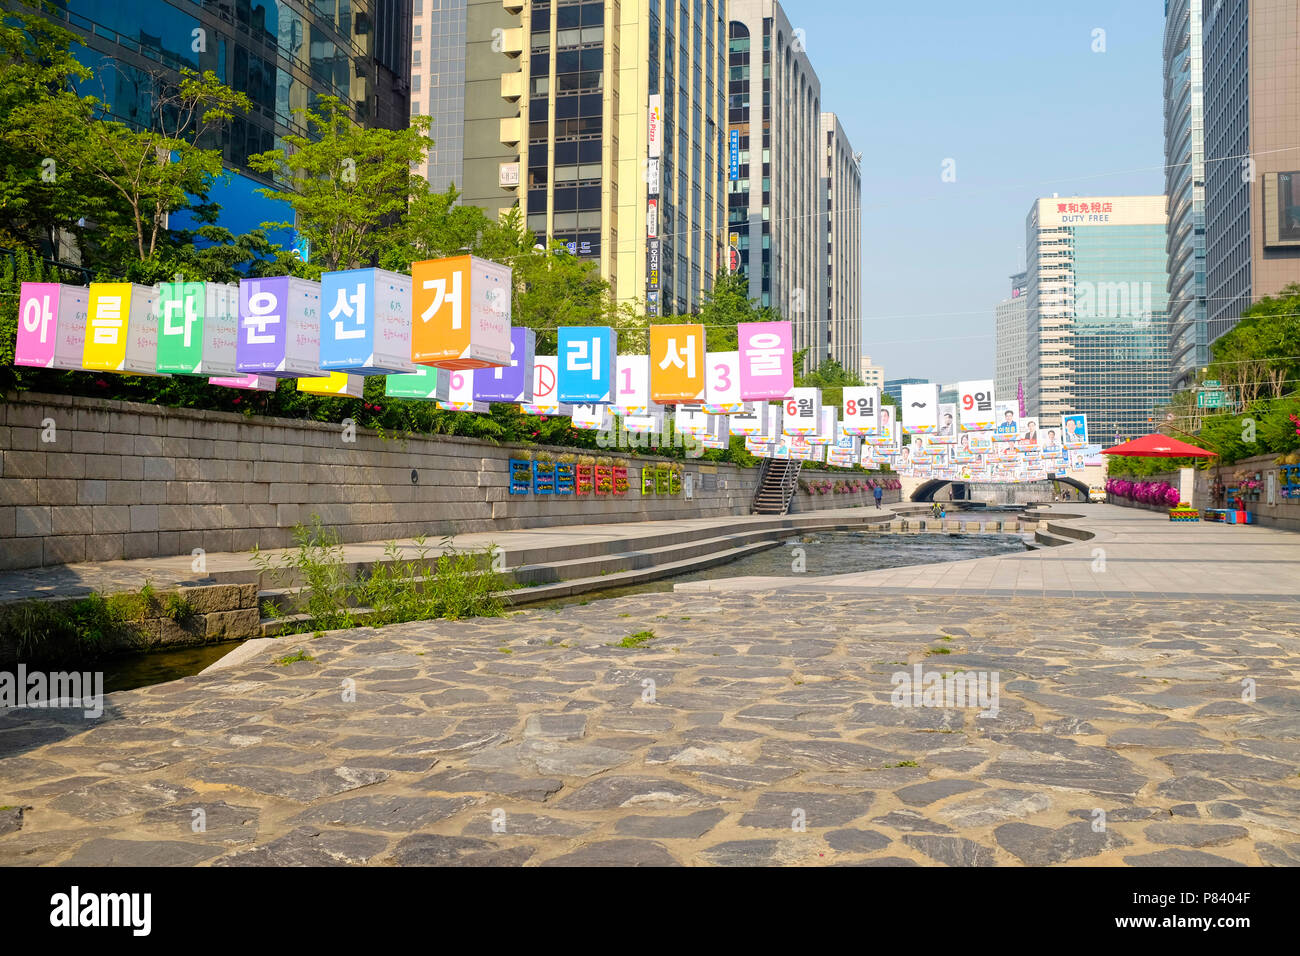 Cheonggyecheon stream in Seoul, South Korea. An area of massive urban renewal. - Stock Image